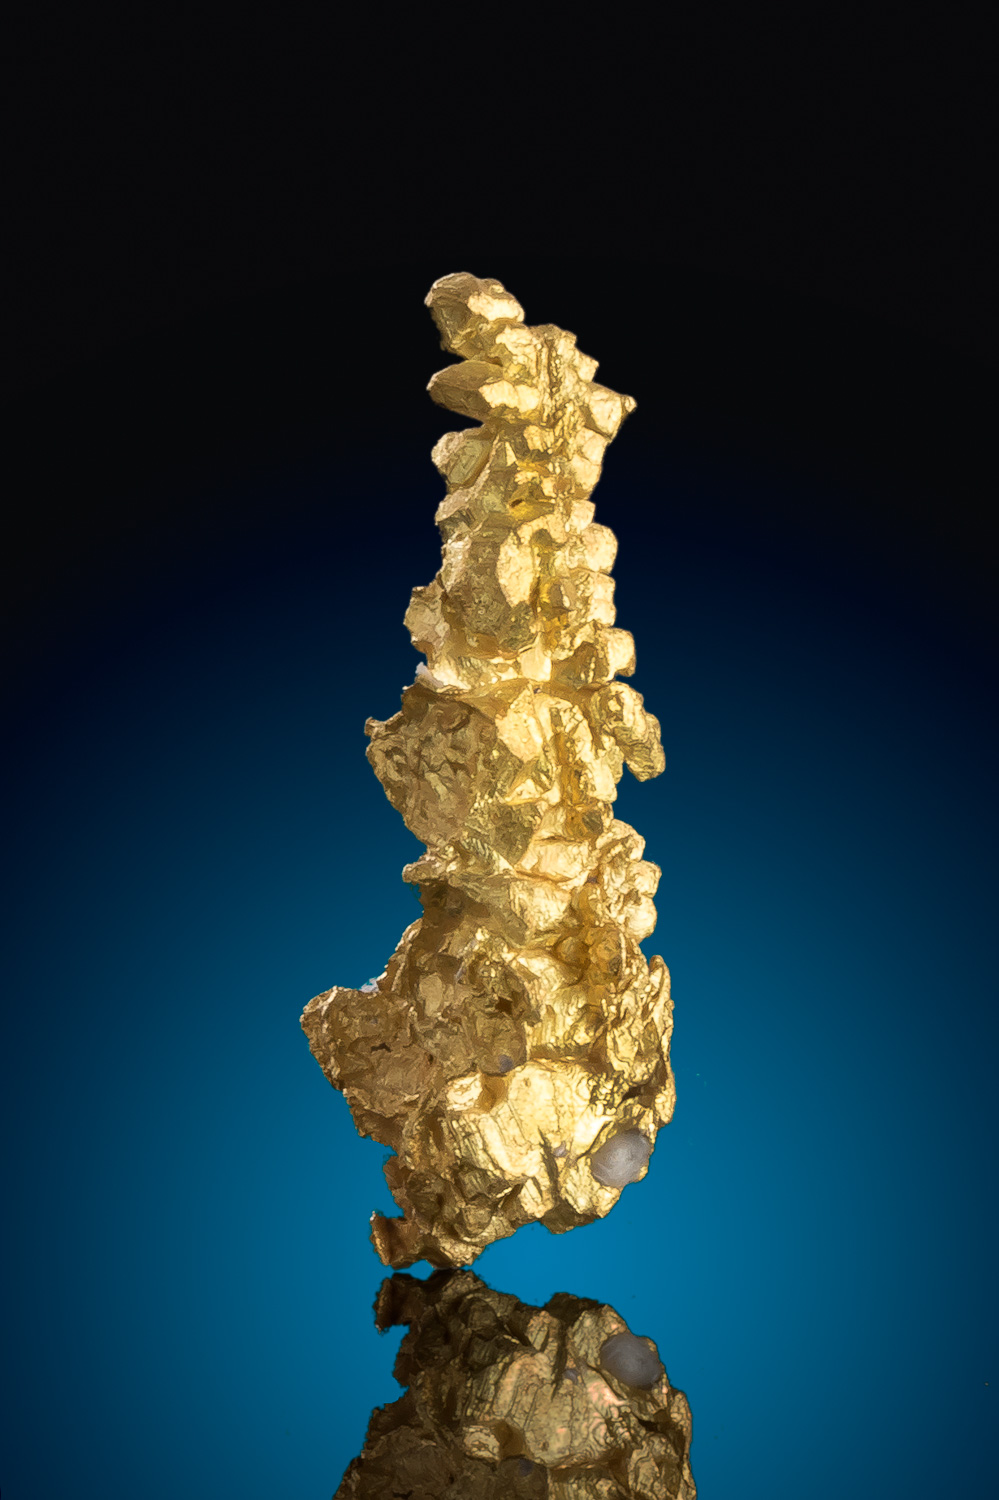 Long and Tapered Gold Crystal - Mariposa County, California